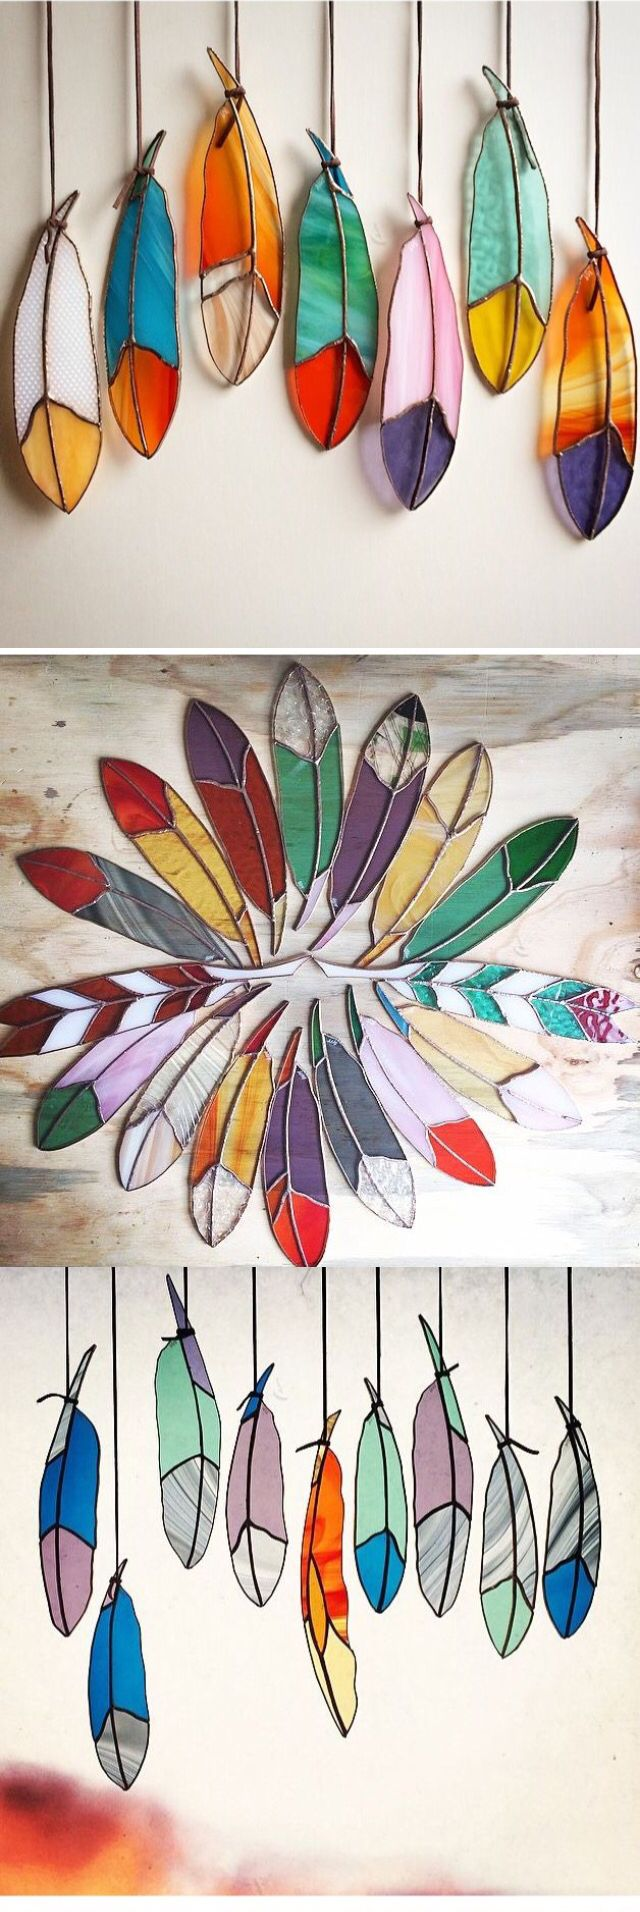 5832 best stain glass images on pinterest | fused glass, glass art